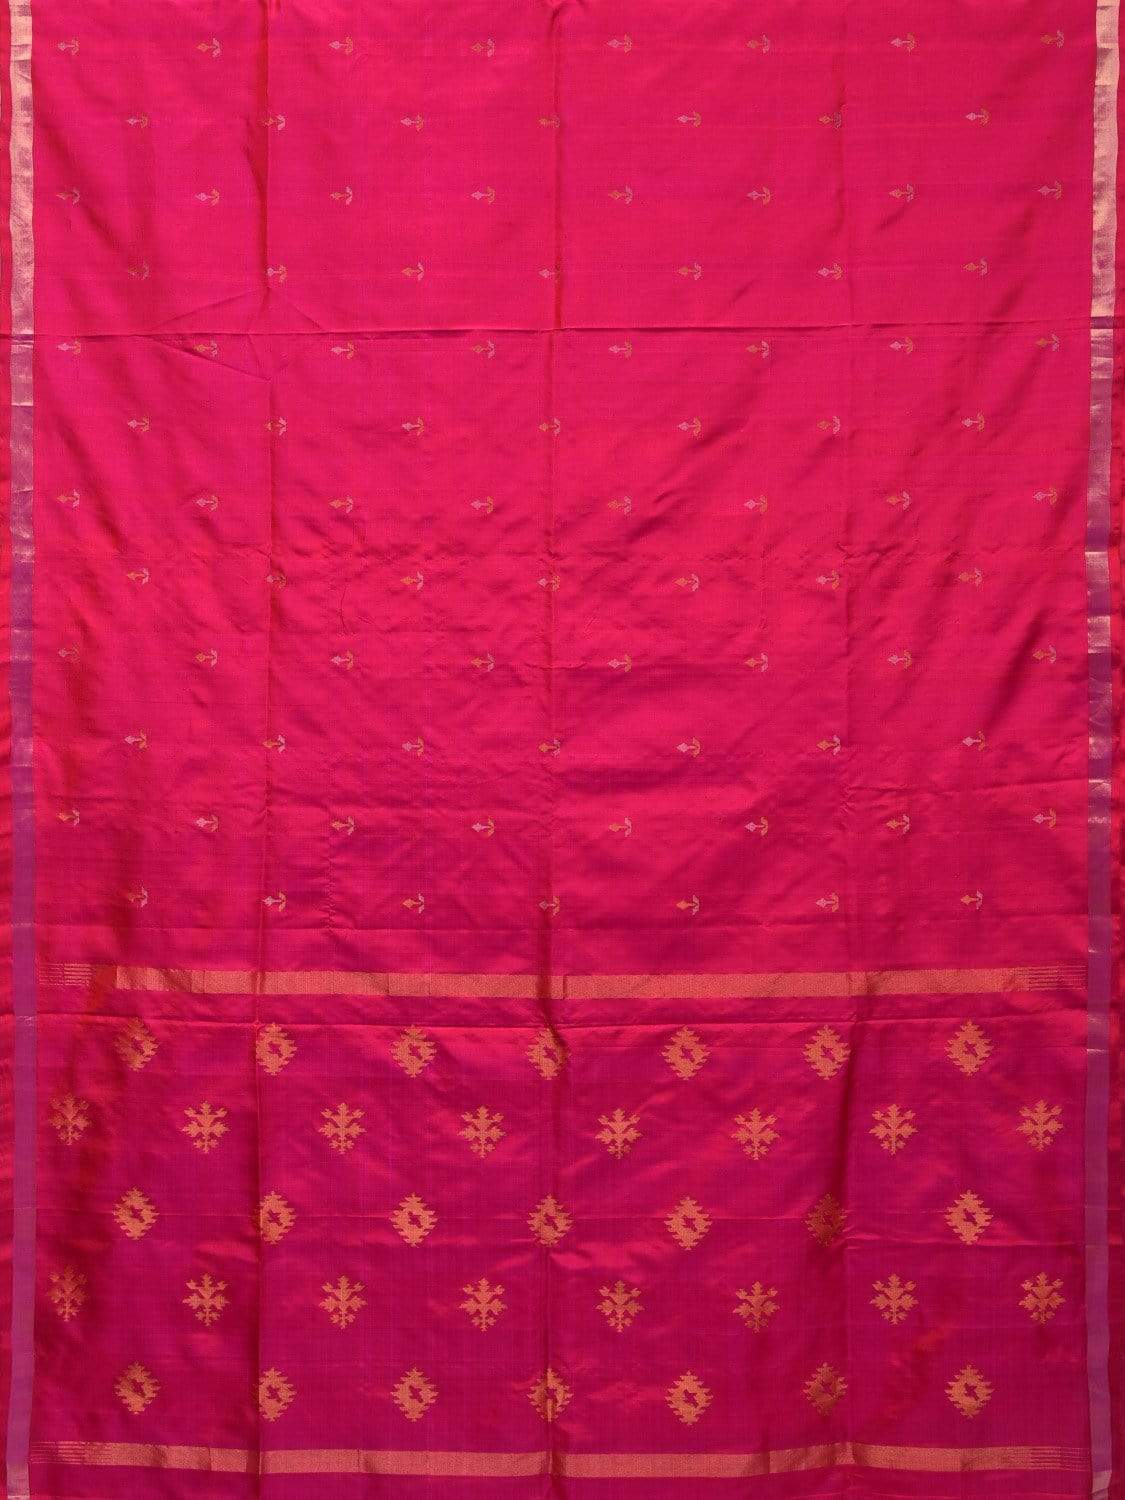 Pink Uppada Silk Handloom Saree with Assorted Buta Pallu Design u1634